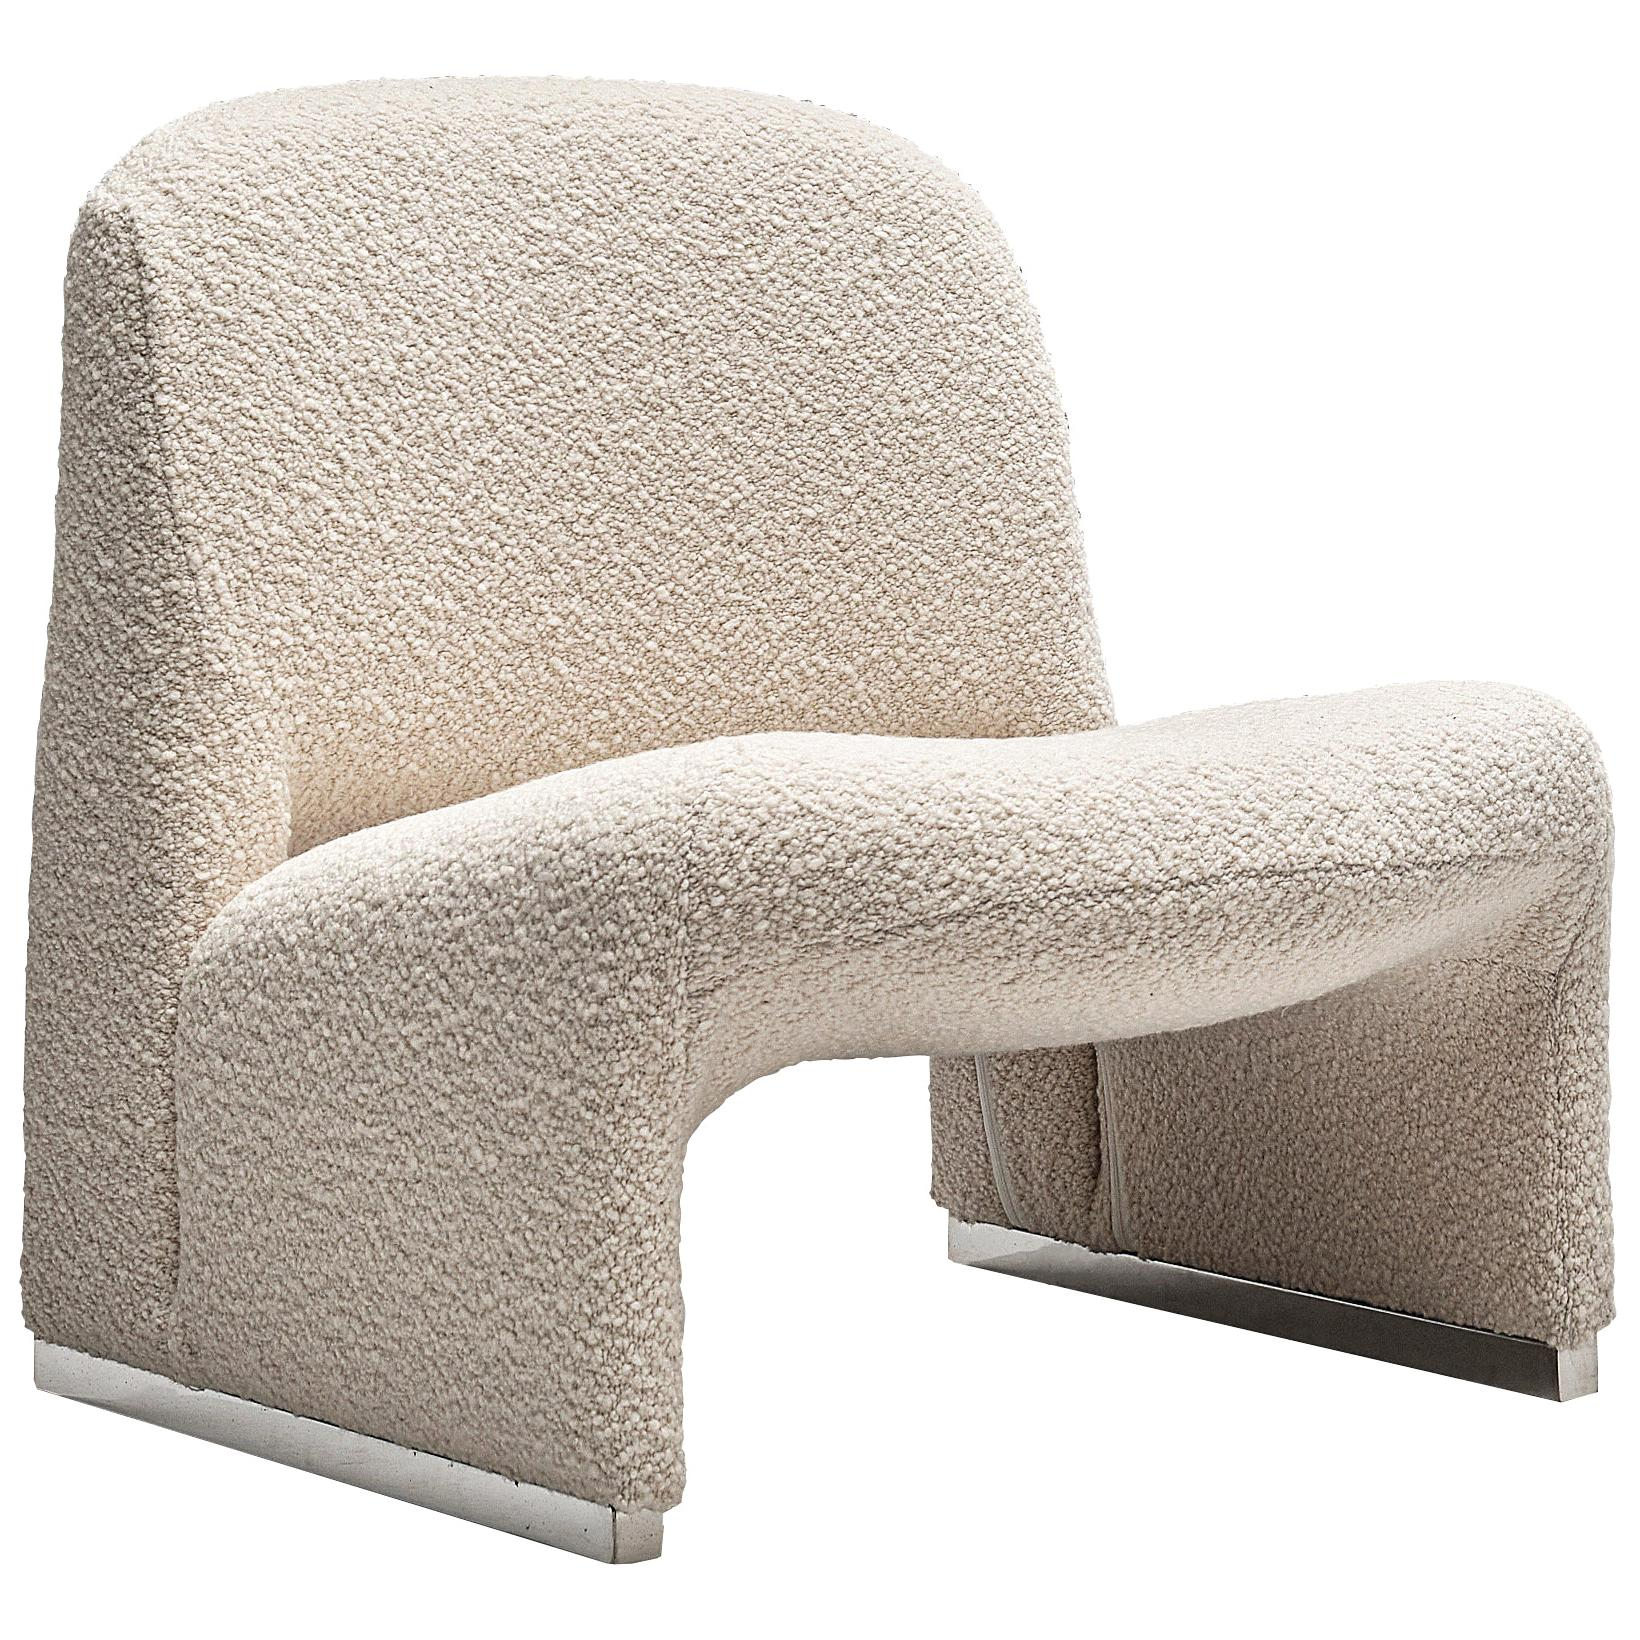 Reupholstered 'Alky' Lounge Chair in the Style of Giancarlo Piretti